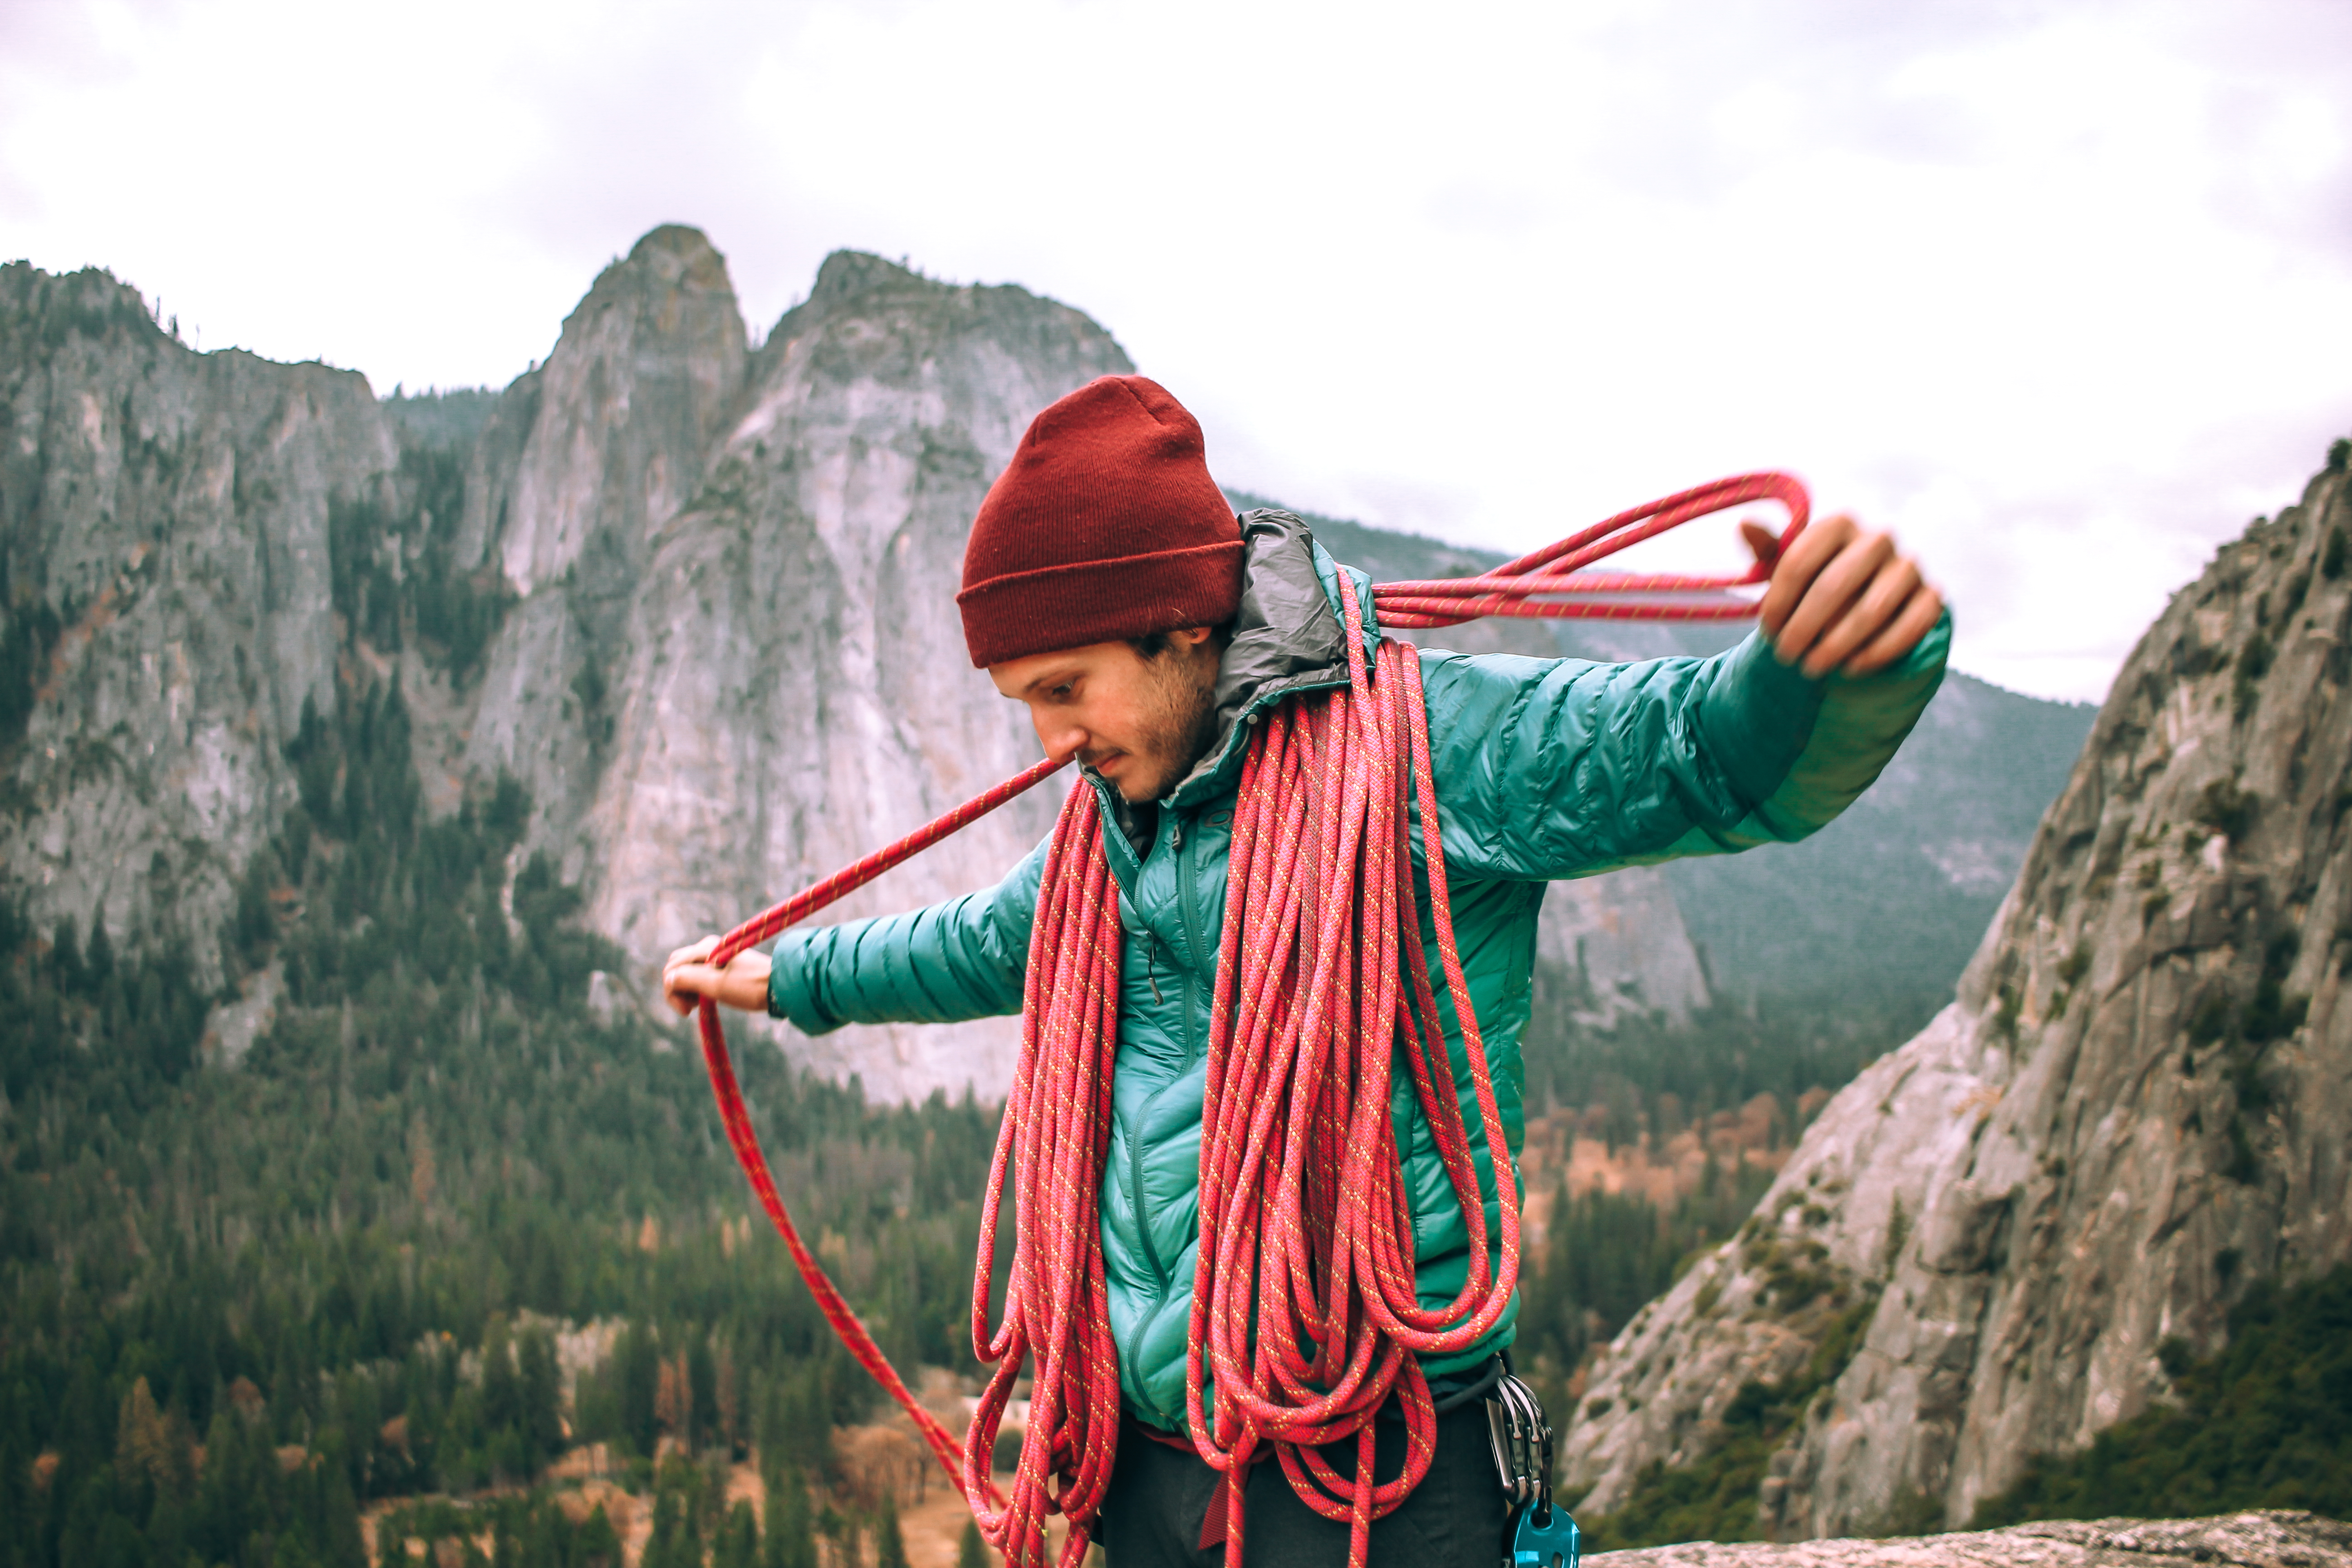 Man coiling rope in Yosemite National Park rock climbing